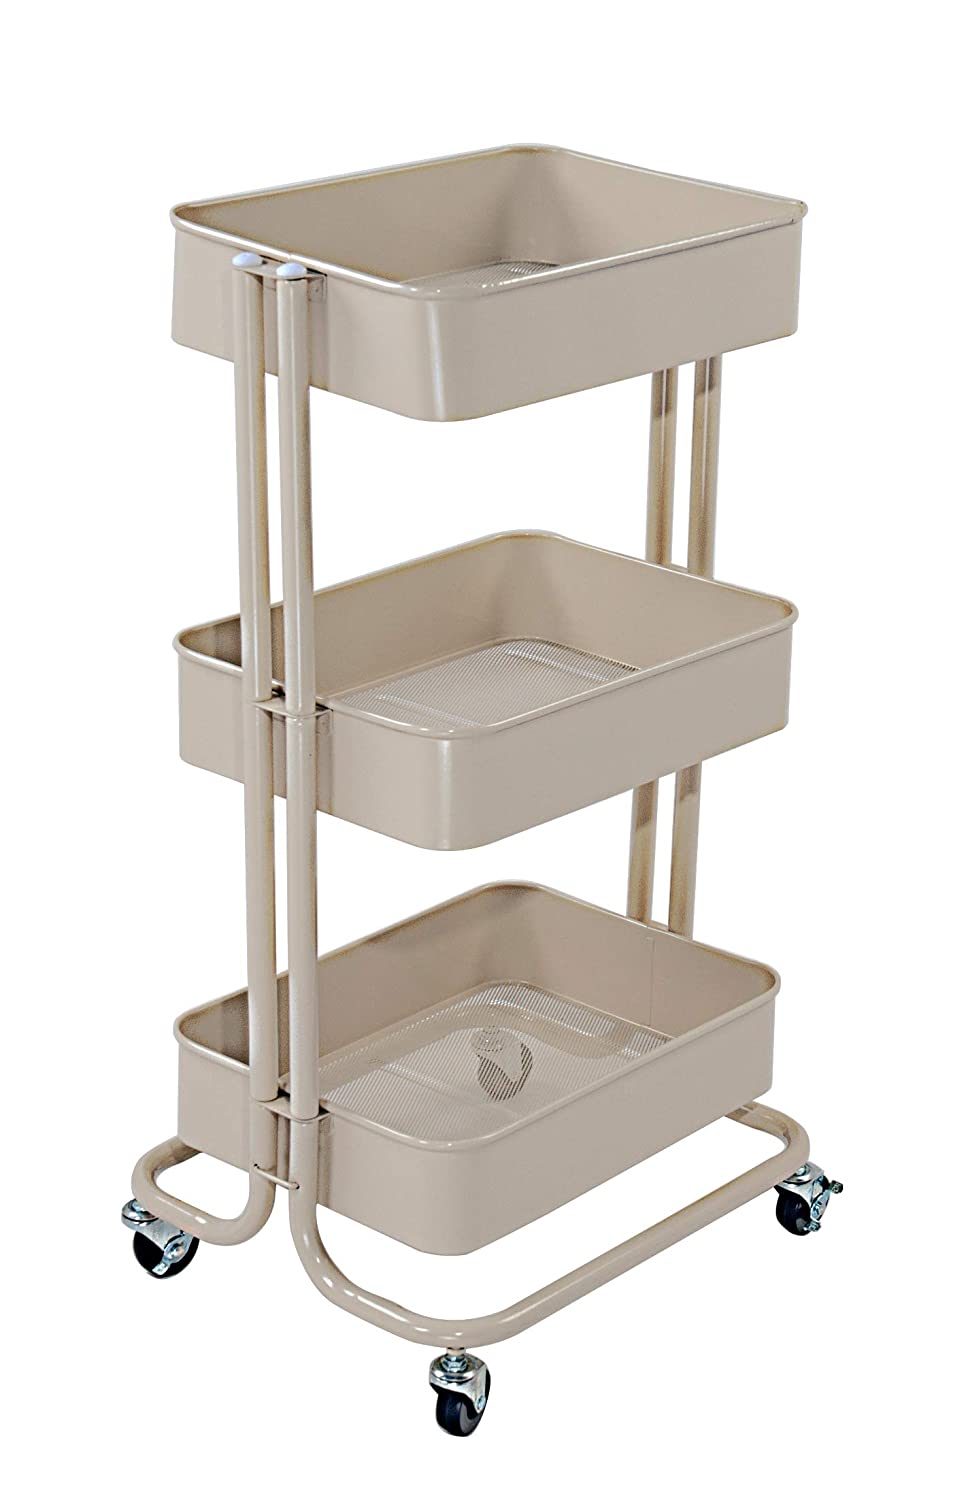 QZDJG 3 Tier Metal Rolling Utility Cart Storage Cart with Wheels Home Kitchen Bedroom Office Storage Trolley Serving Cart Mobile Storage Cart(Beige)